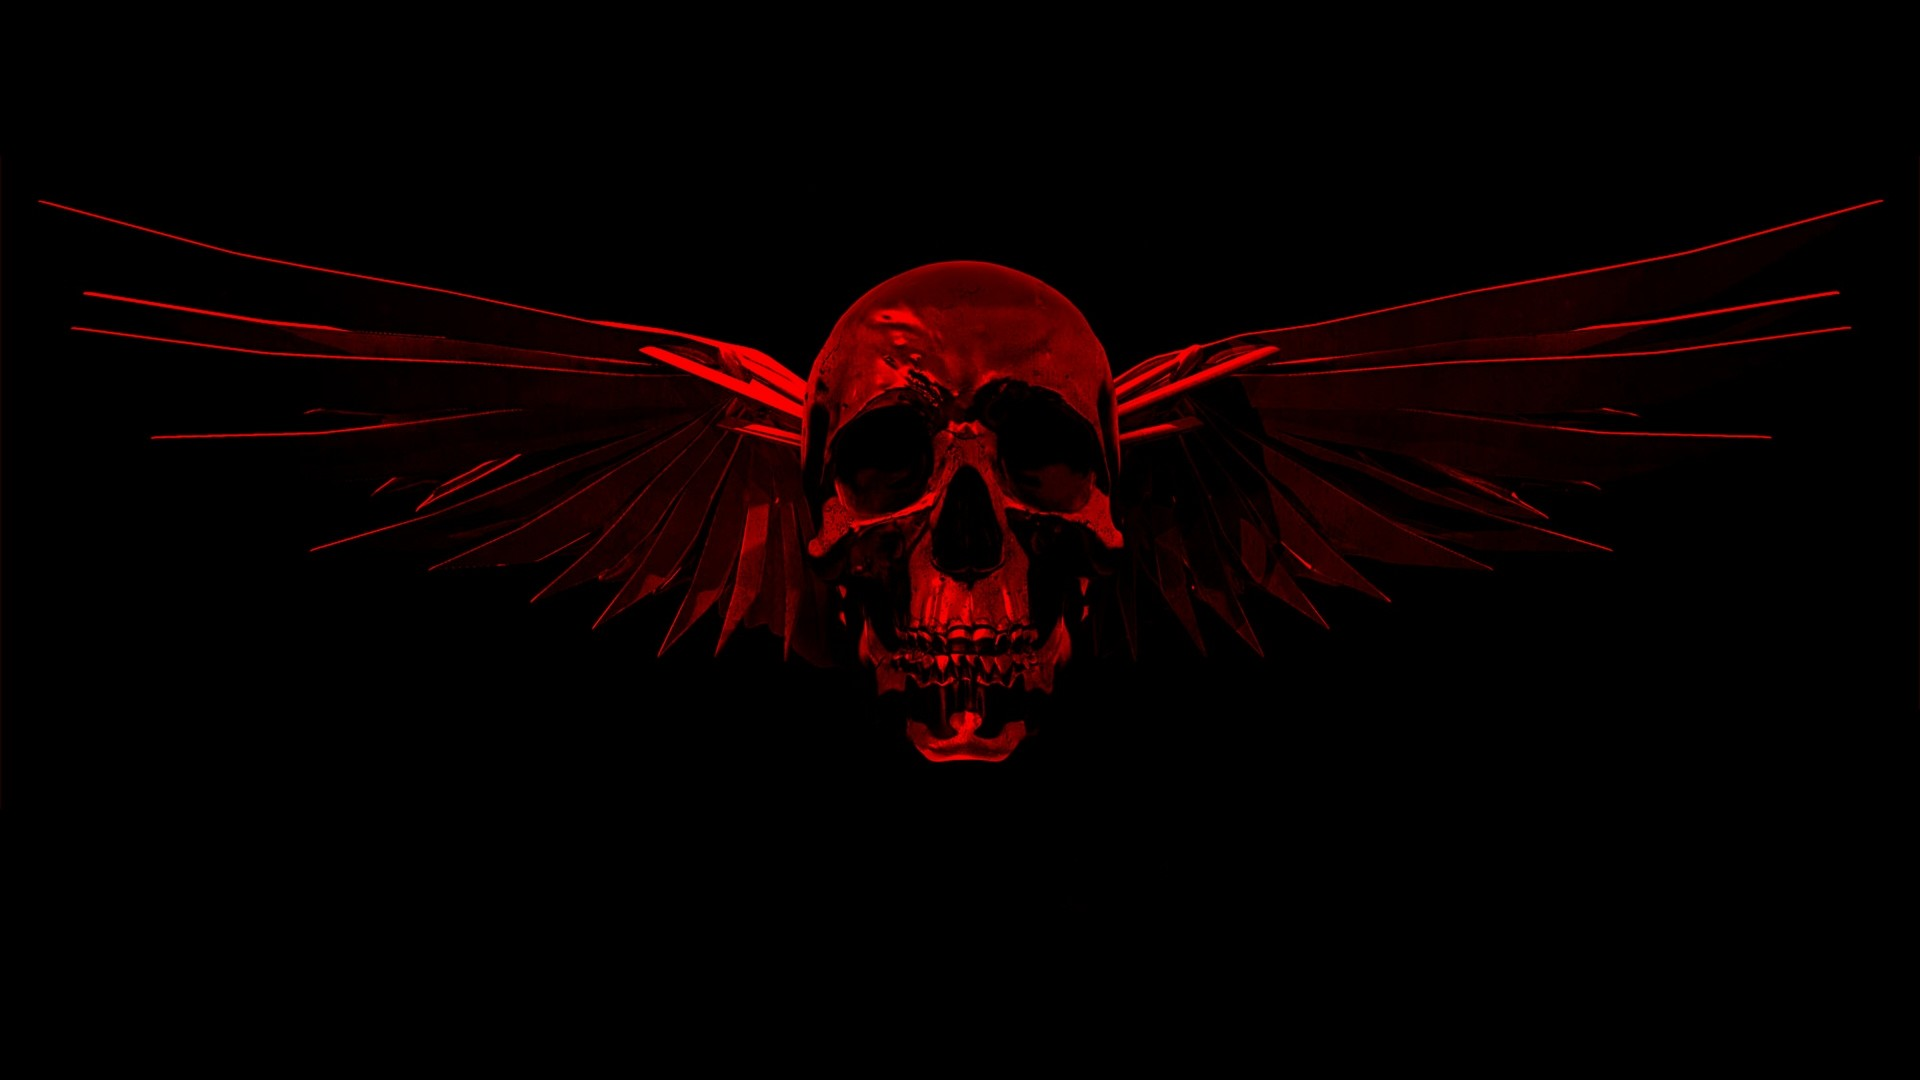 Red And Black Skull Wallpapers (44 Wallpapers)